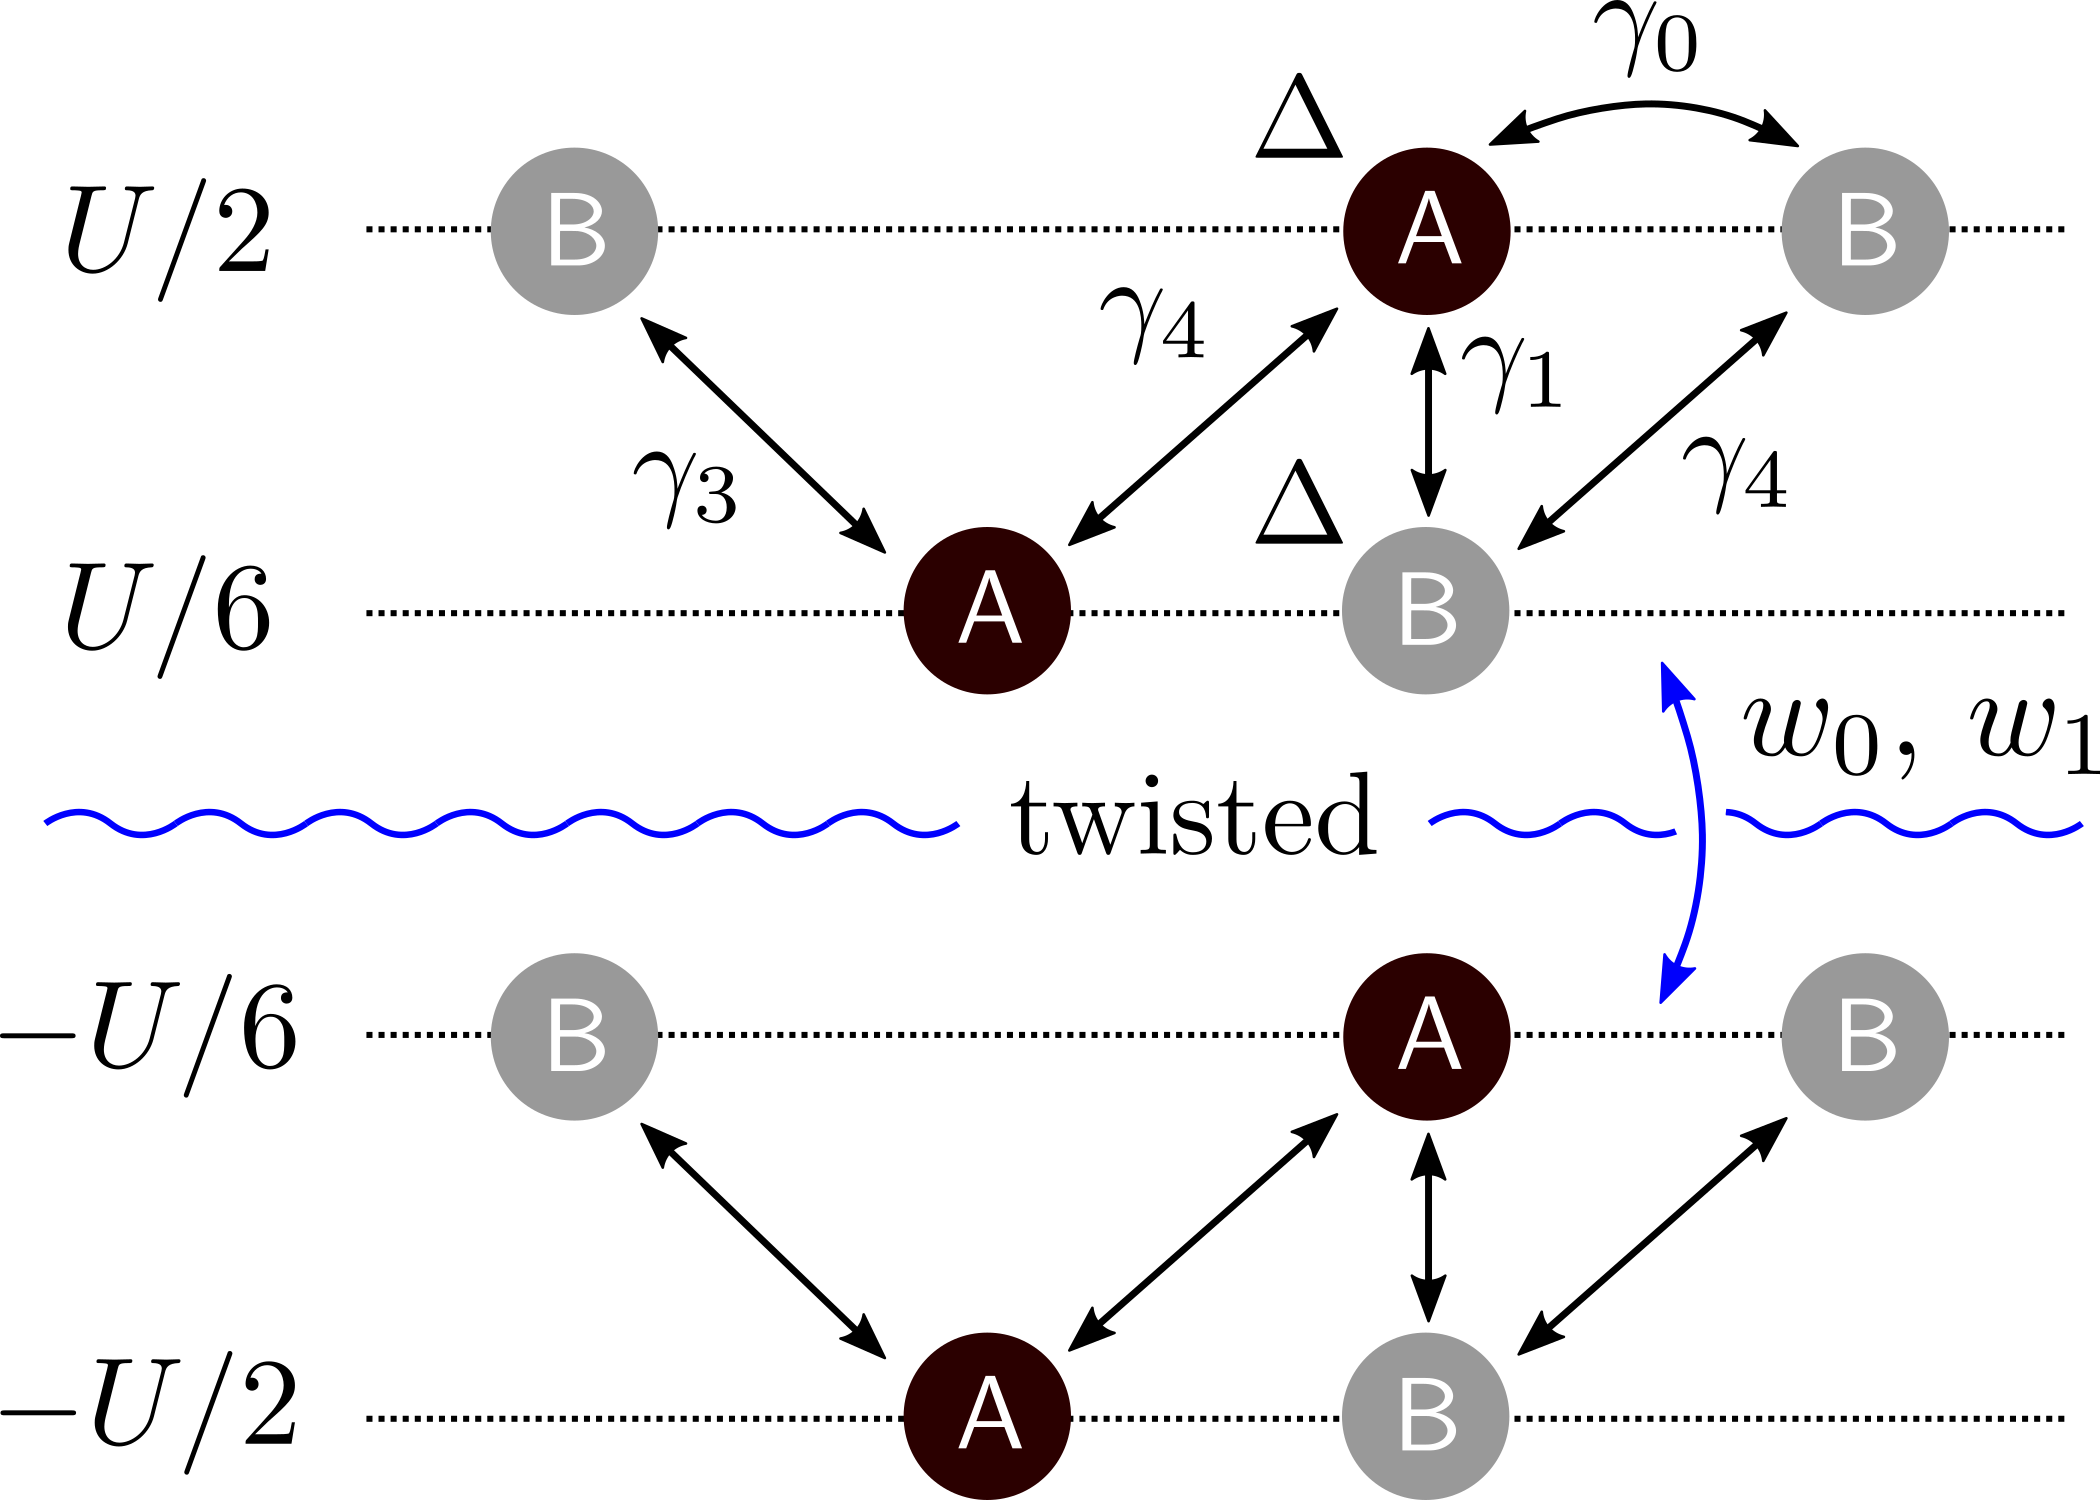 Twisted double BLG model (ABAB stacking) with the gating voltage